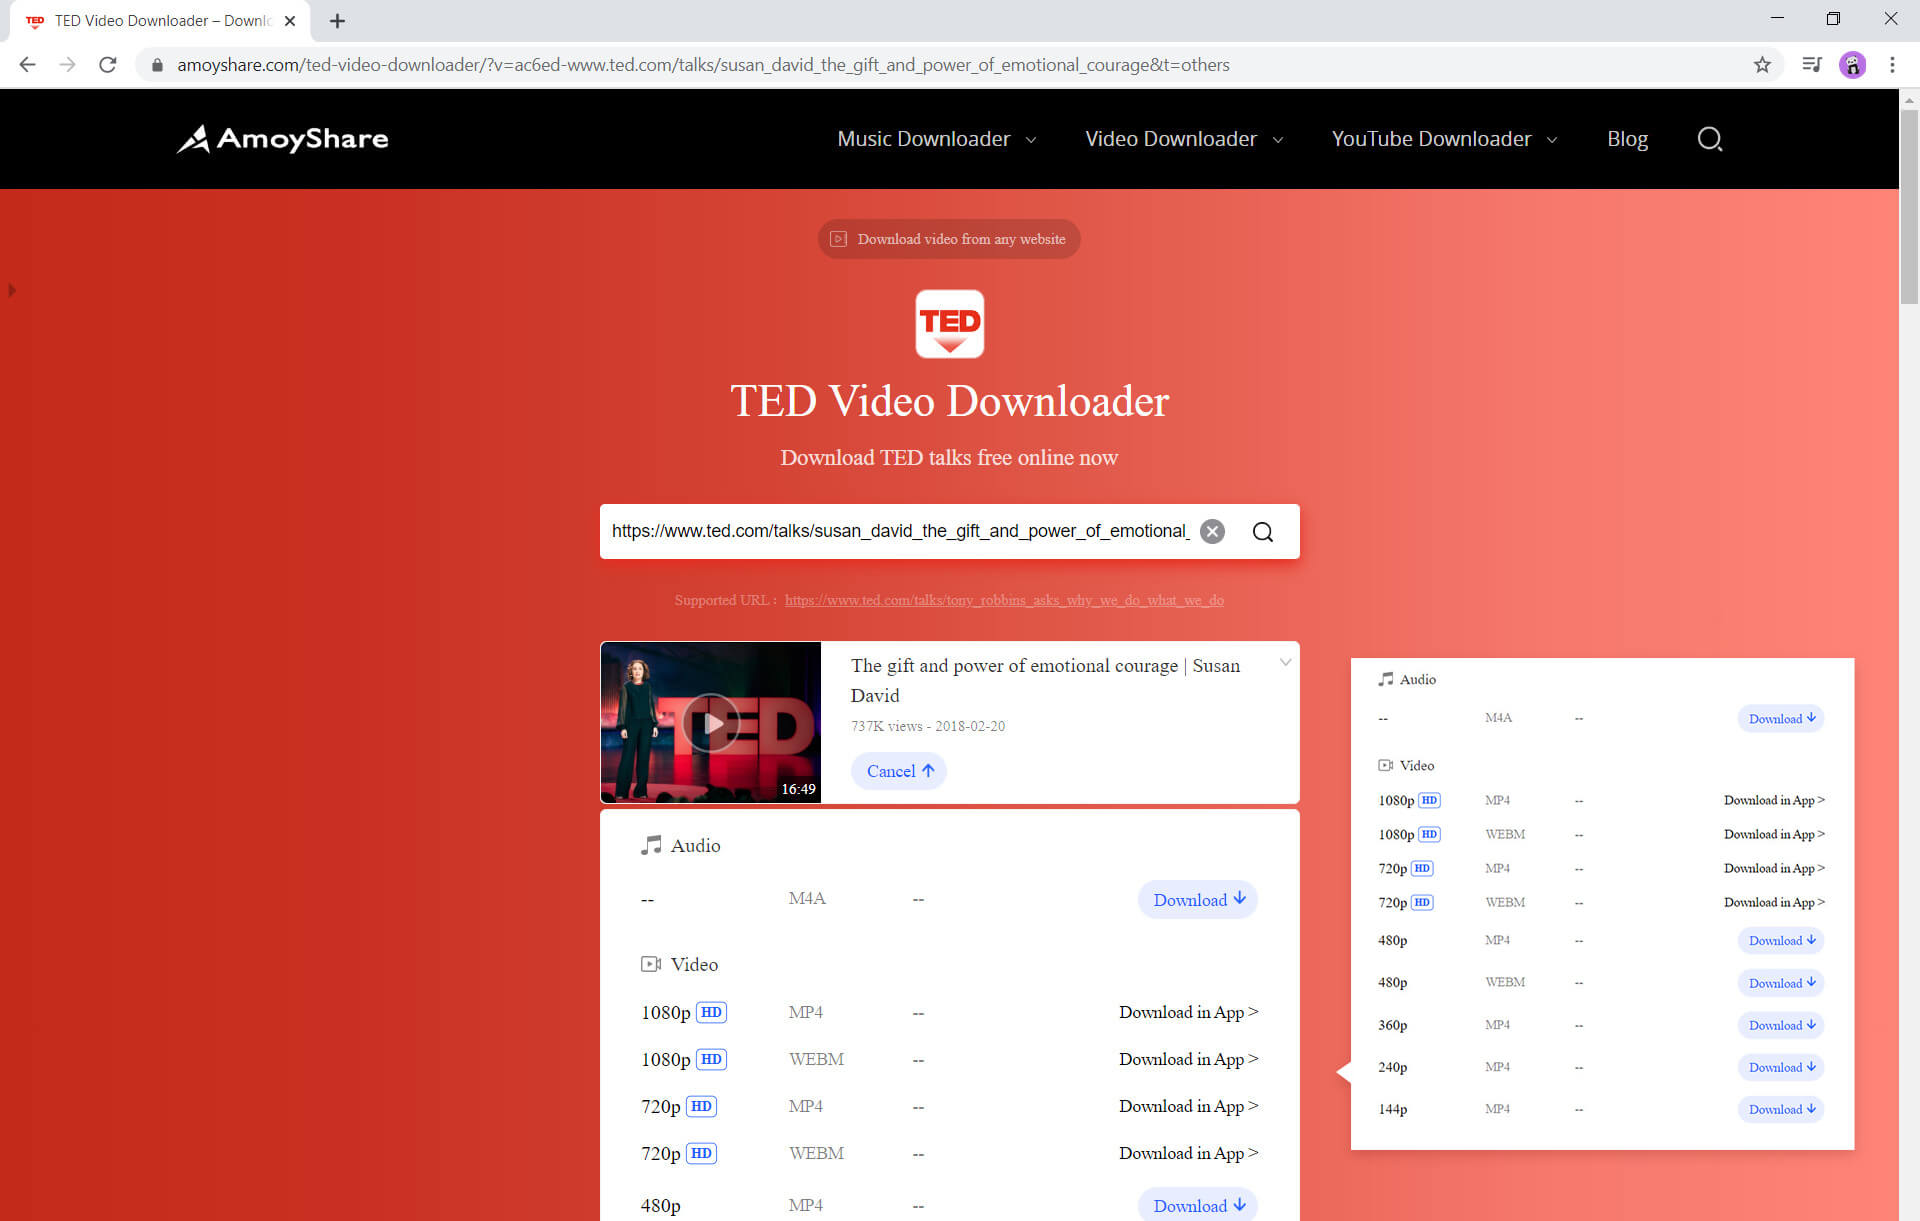 Different video resolutions to download